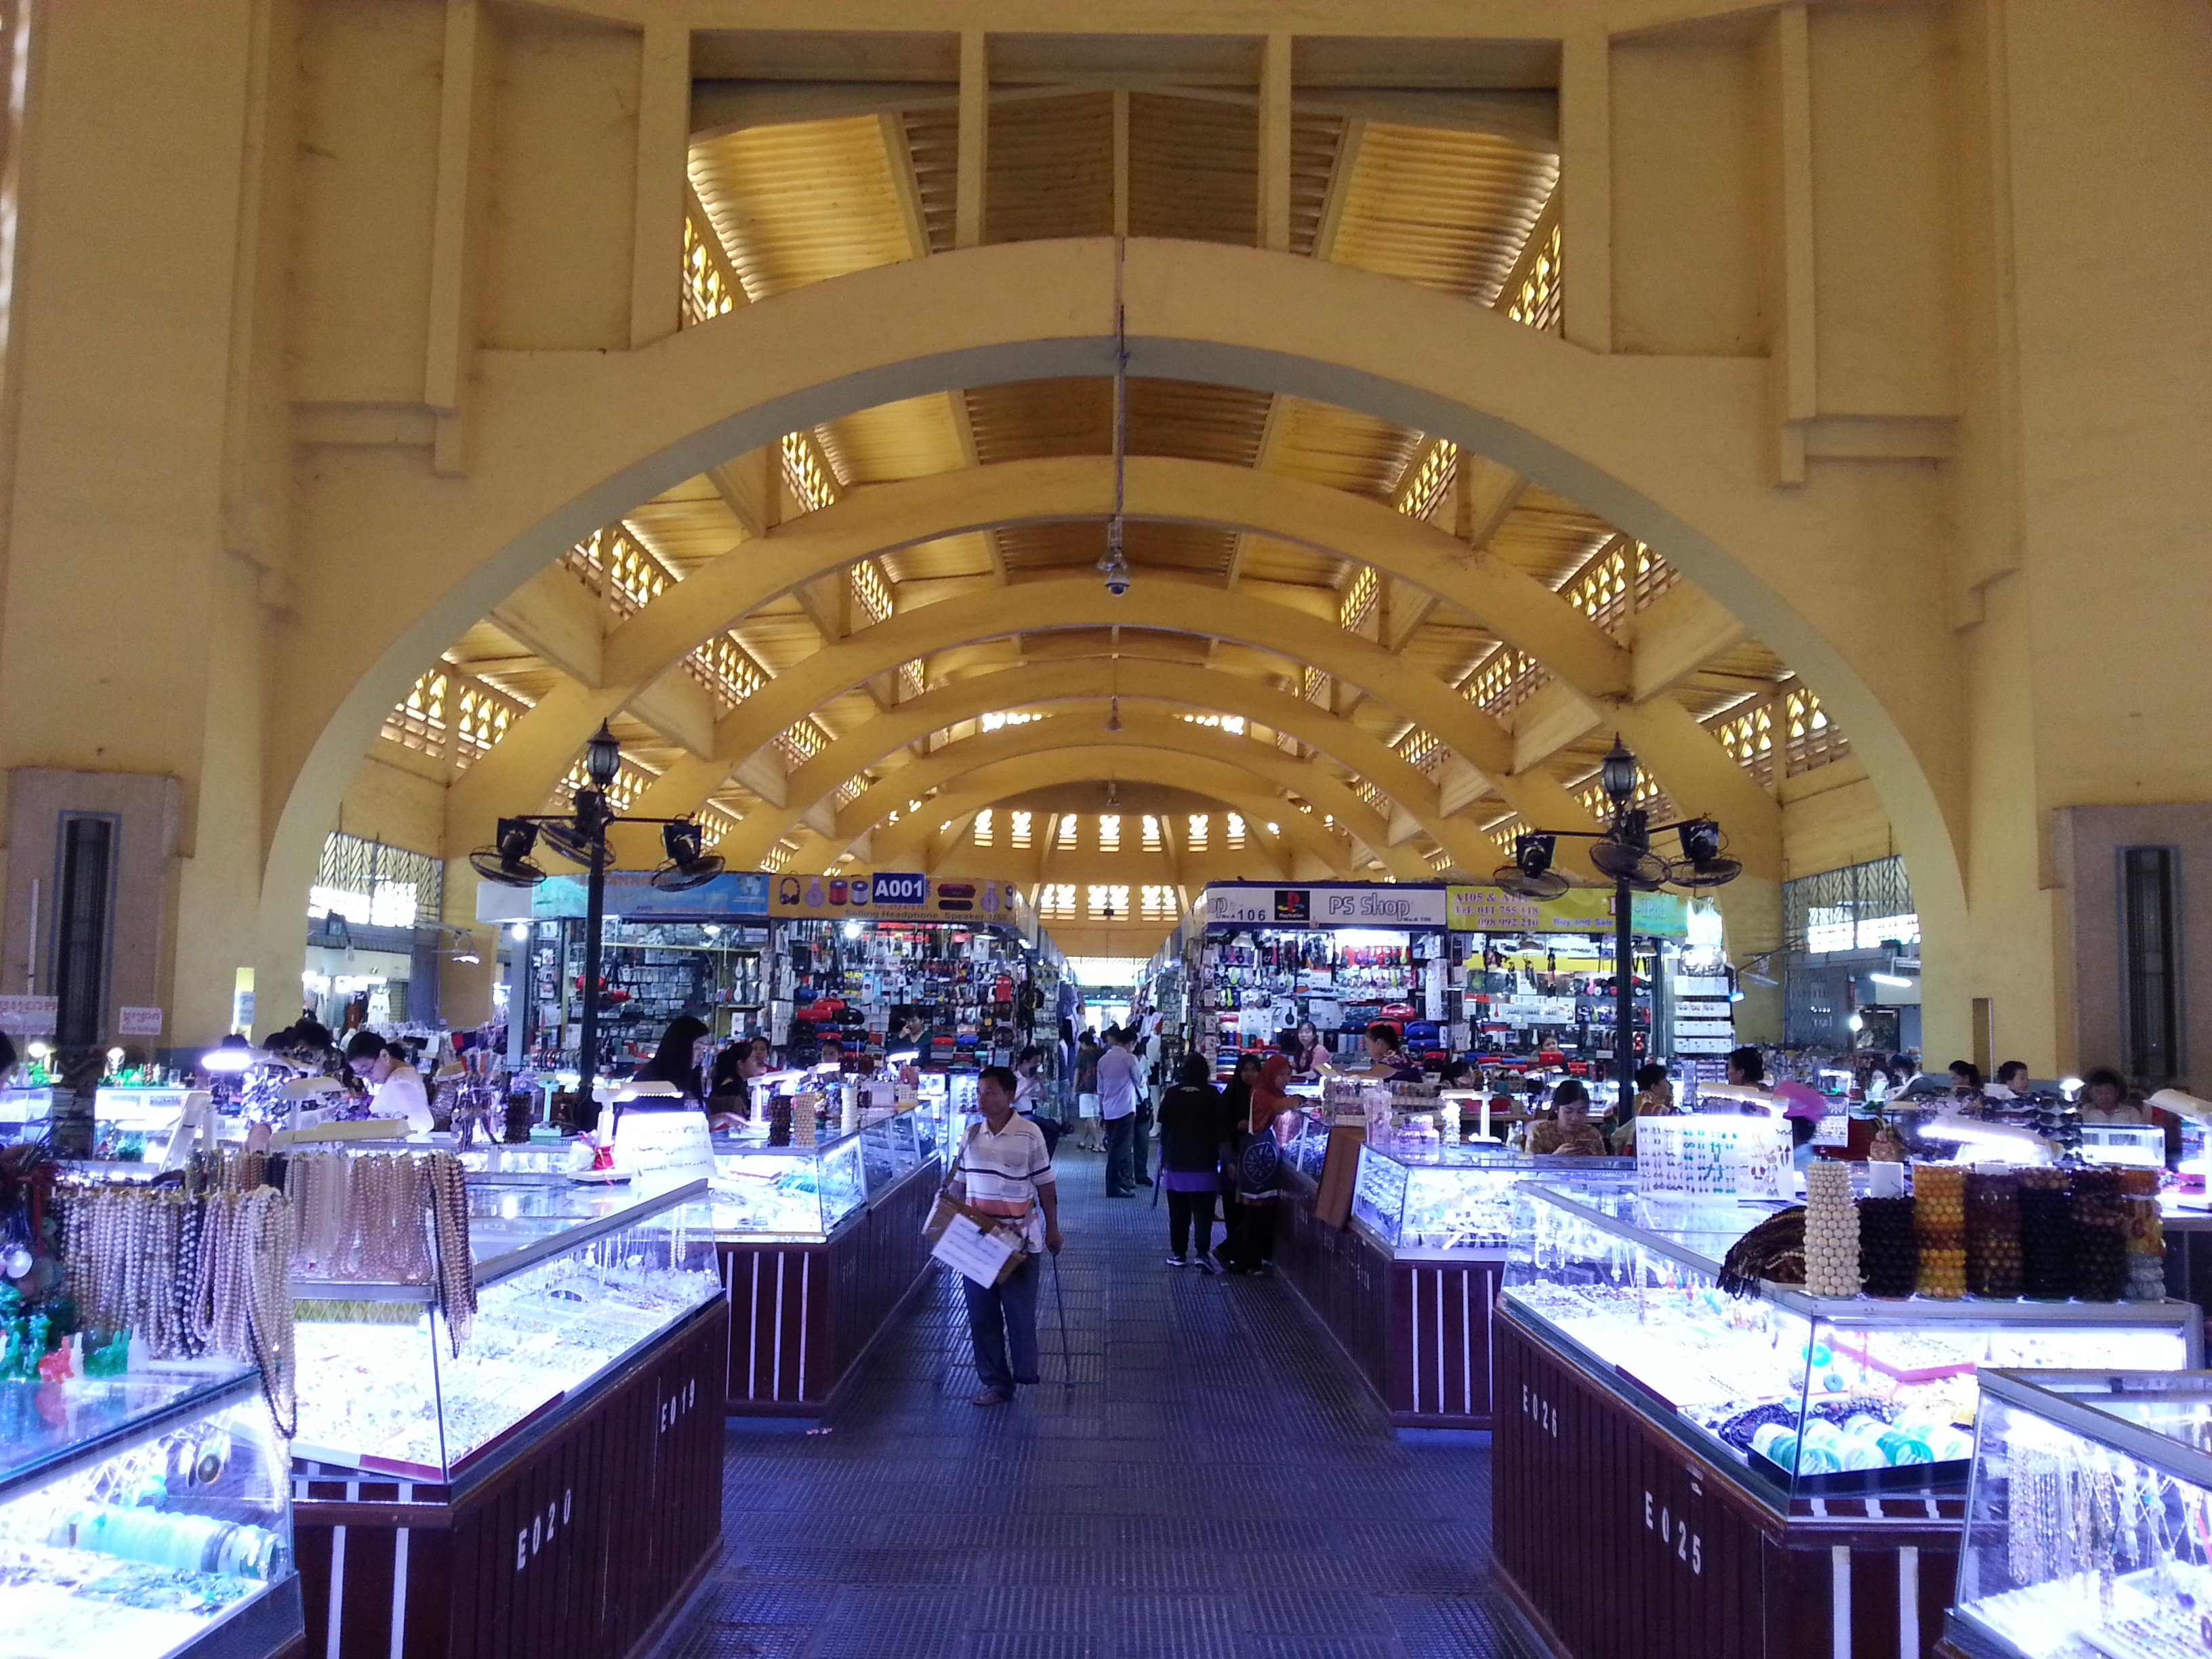 The roof in Central Market is supported by curved beams